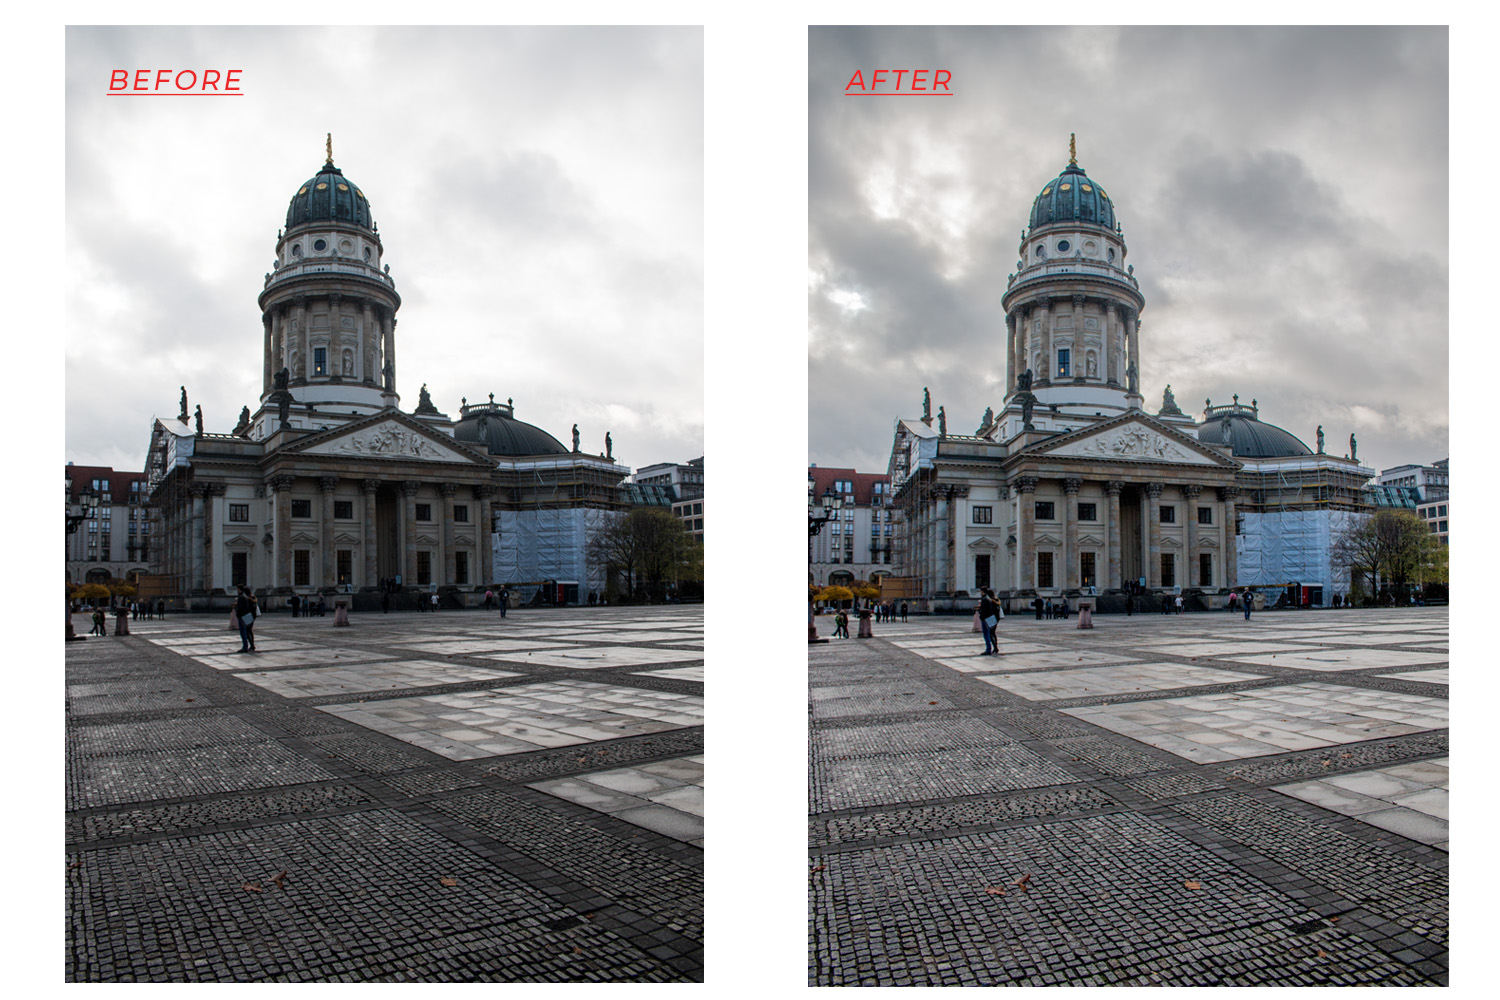 https://i1.wp.com/digital-photography-school.com/wp-content/uploads/2018/10/Balance-Black-White-Clippings-ACR-Photoshop-Tutorial-Intro-Before-After.jpg?resize=1500%2C1000&ssl=1